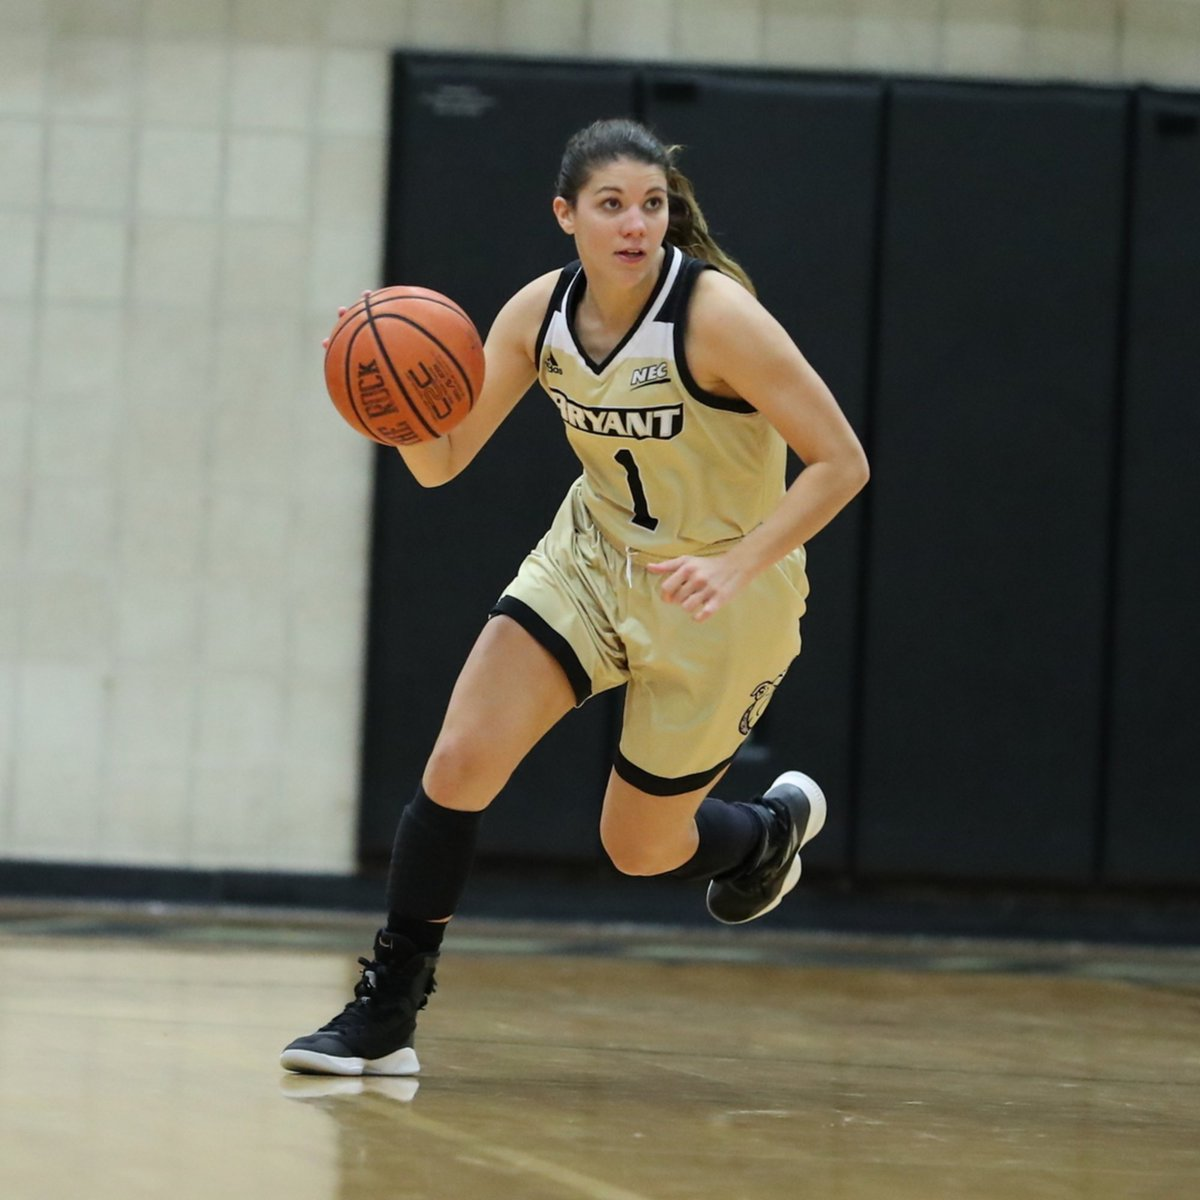 Did you know that Masey Zegarowski nearly doubled her assist total from last season?!  24 ➡ 50  Talk about #MondayMotivaton   #AllHeart | #AllHustle | #GoBryant